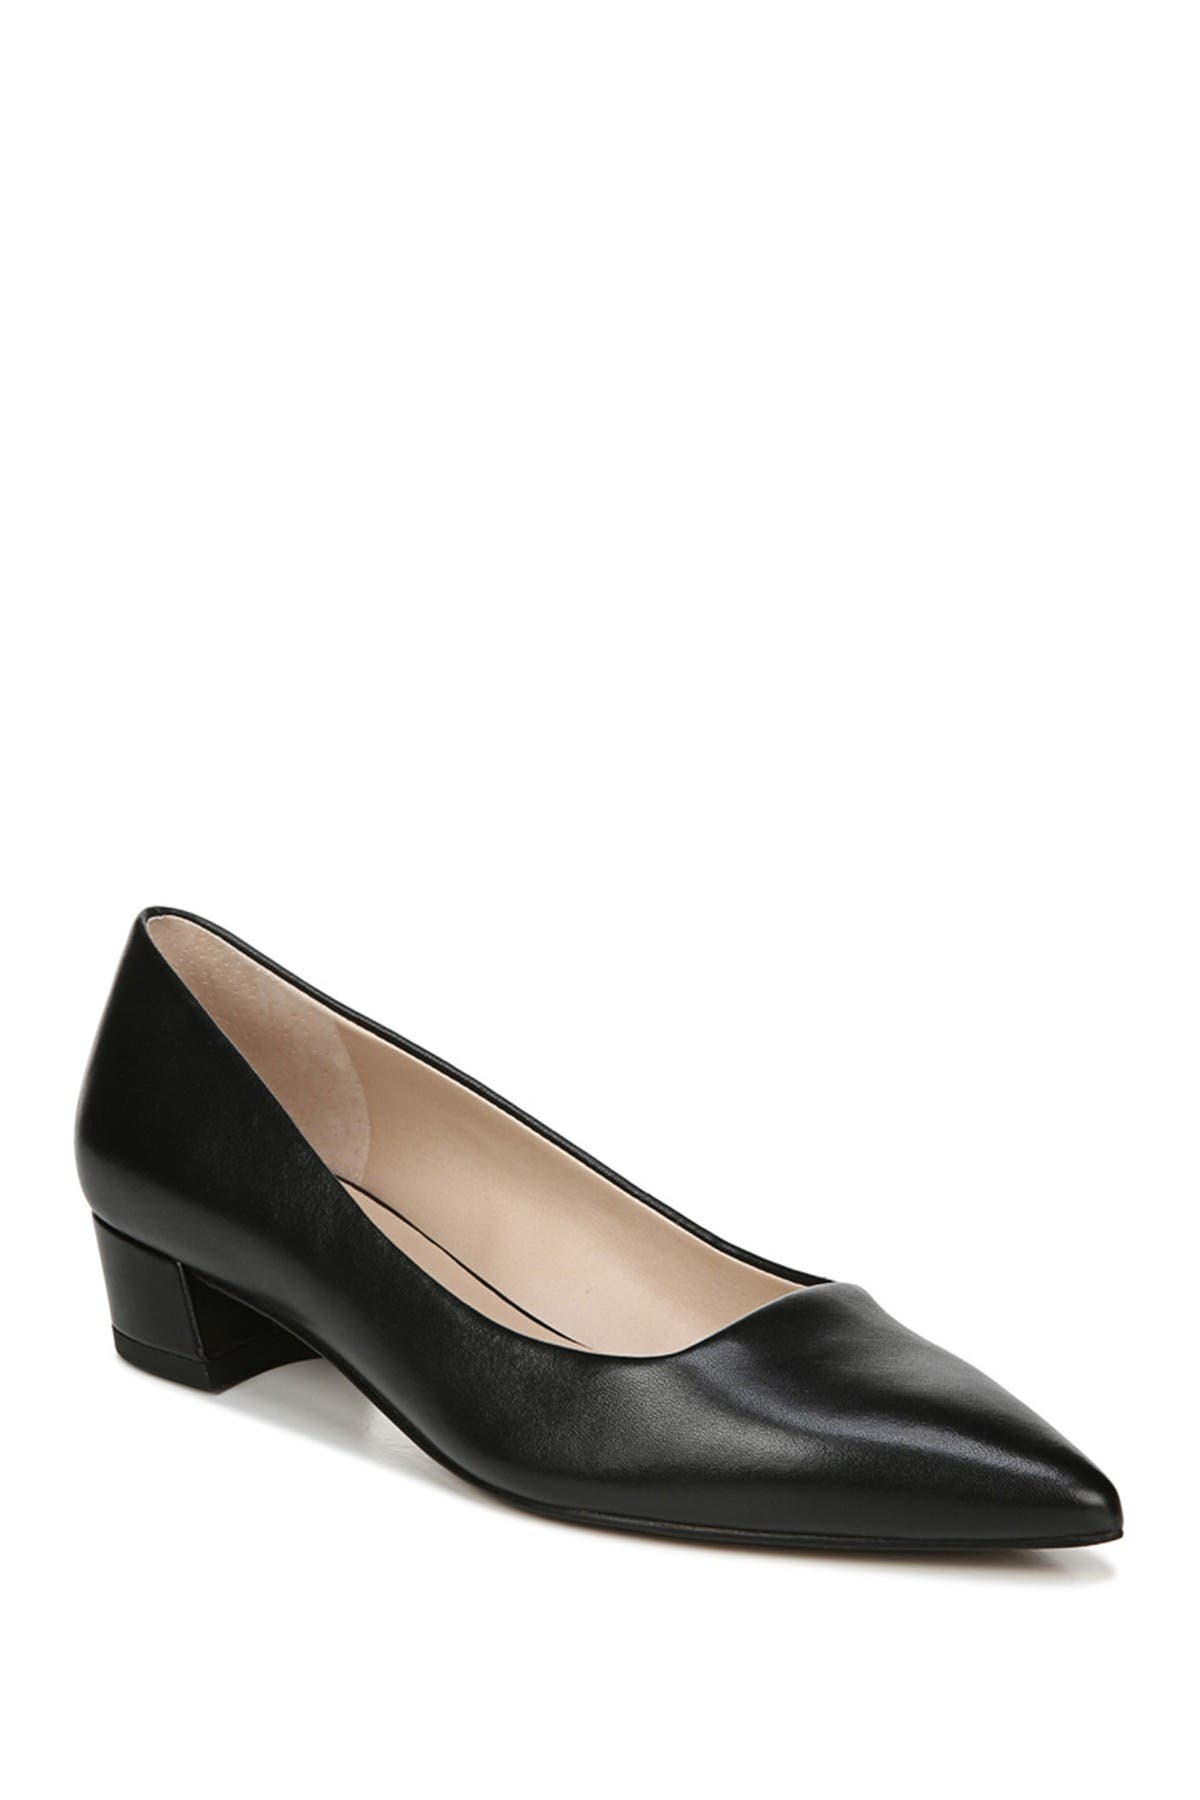 Image of Franco Sarto Leather Pointed Toe Pump